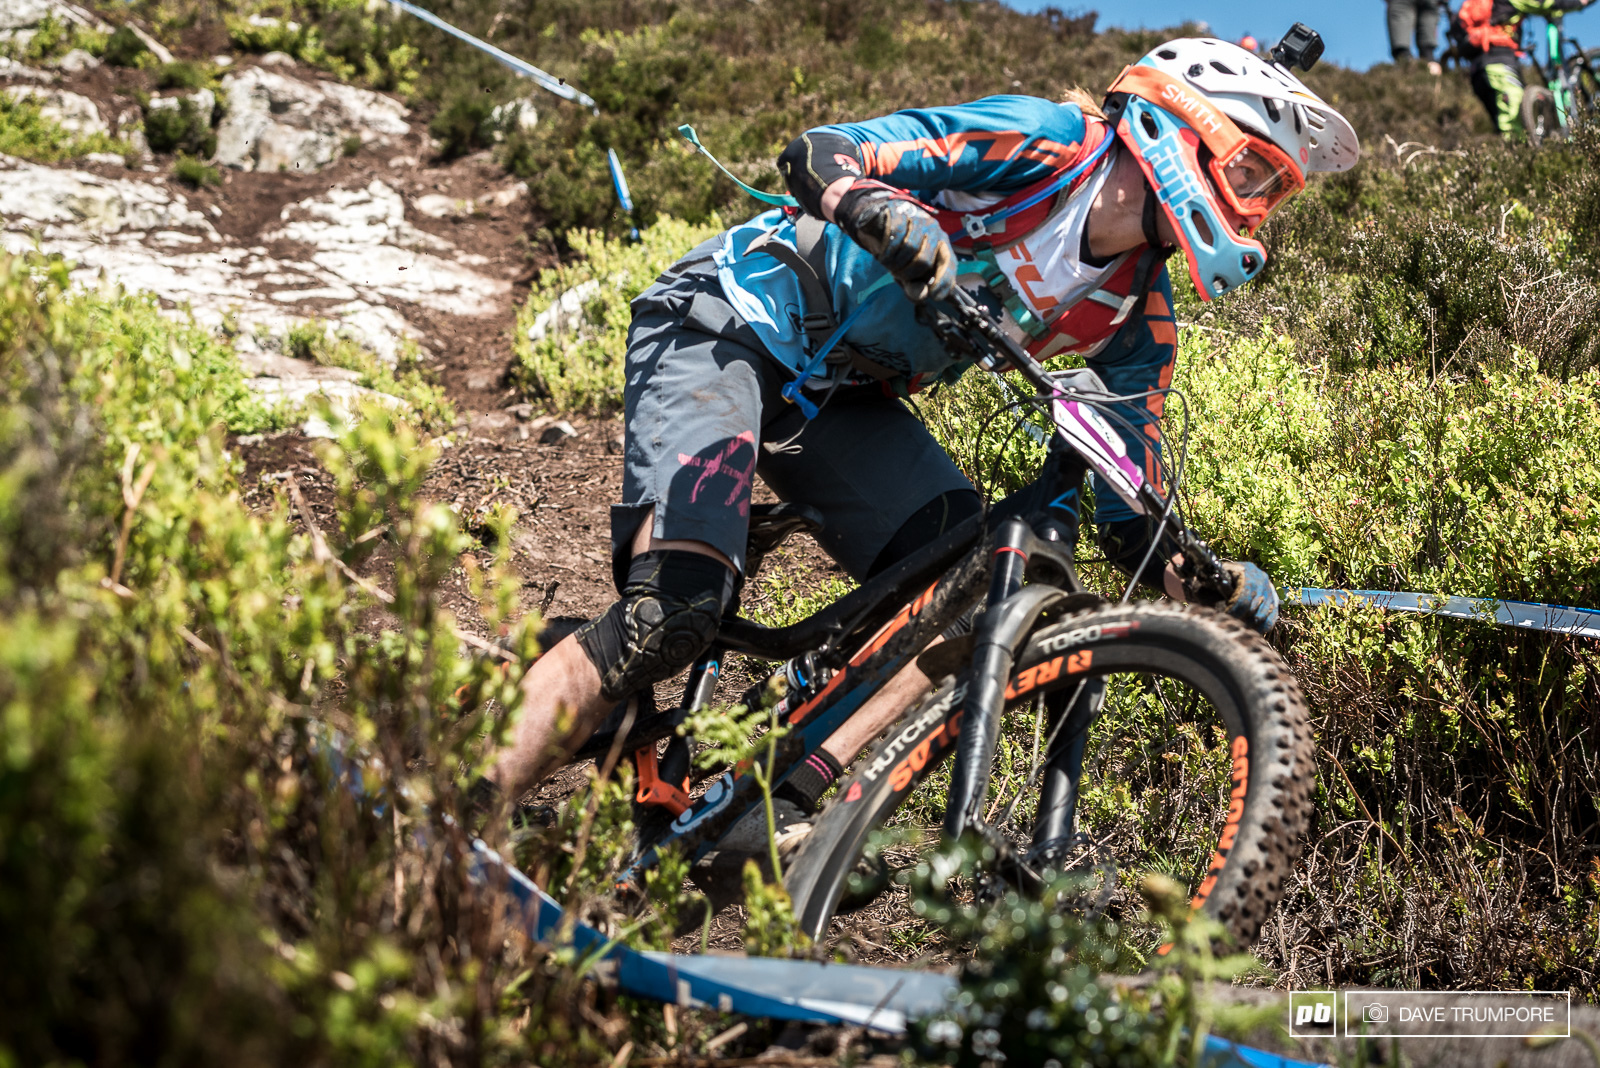 It s good to see Meggie Bichard back on track after missing the two South American rounds.